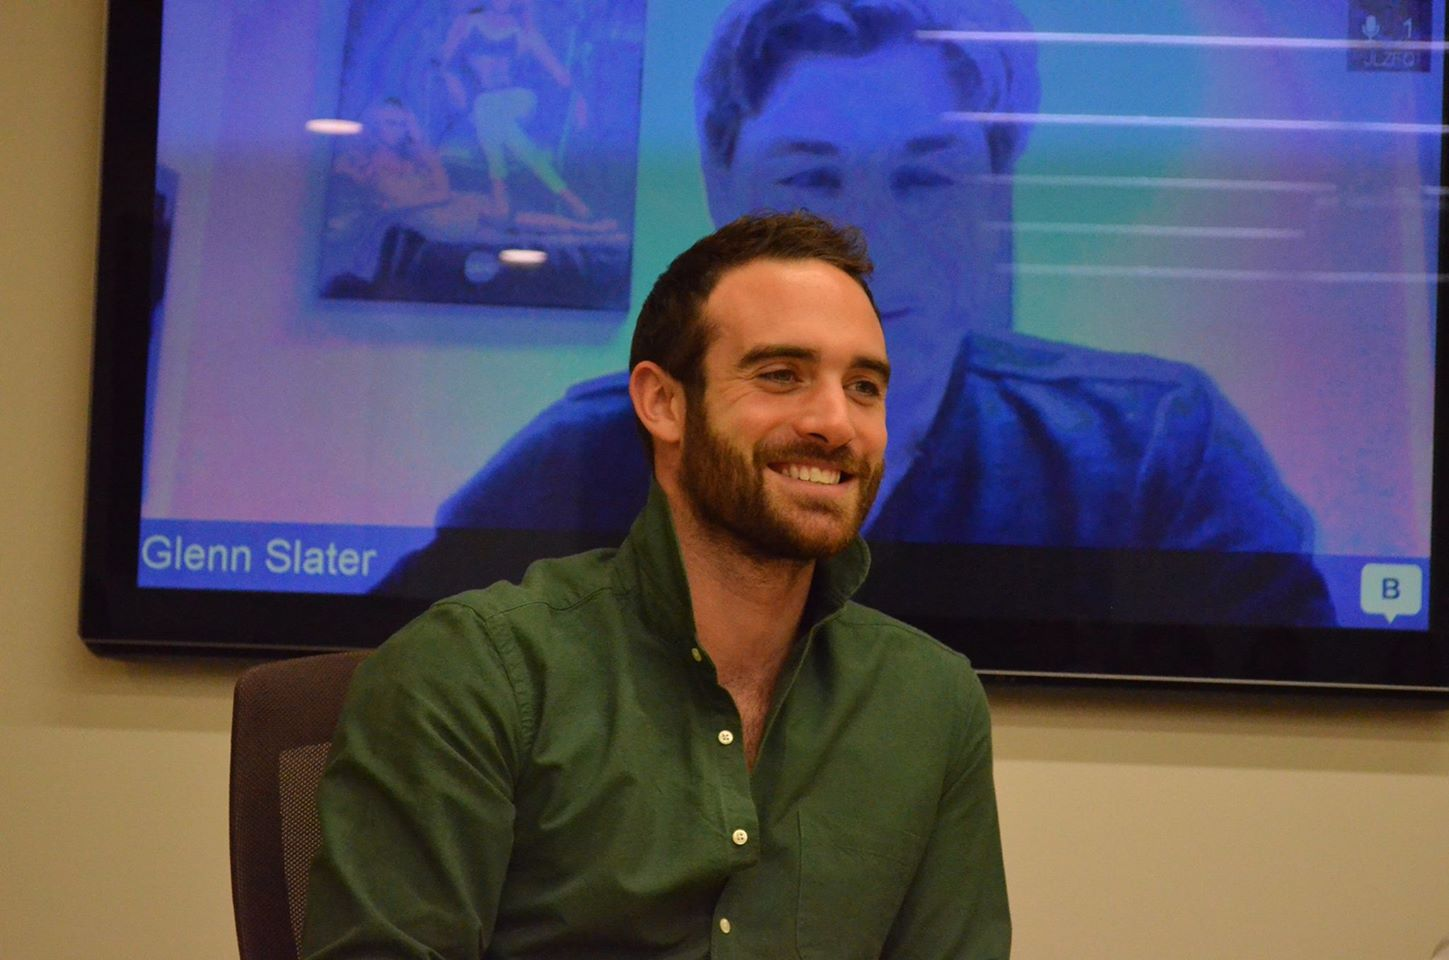 Interview with Joshua Sasse from Galavant